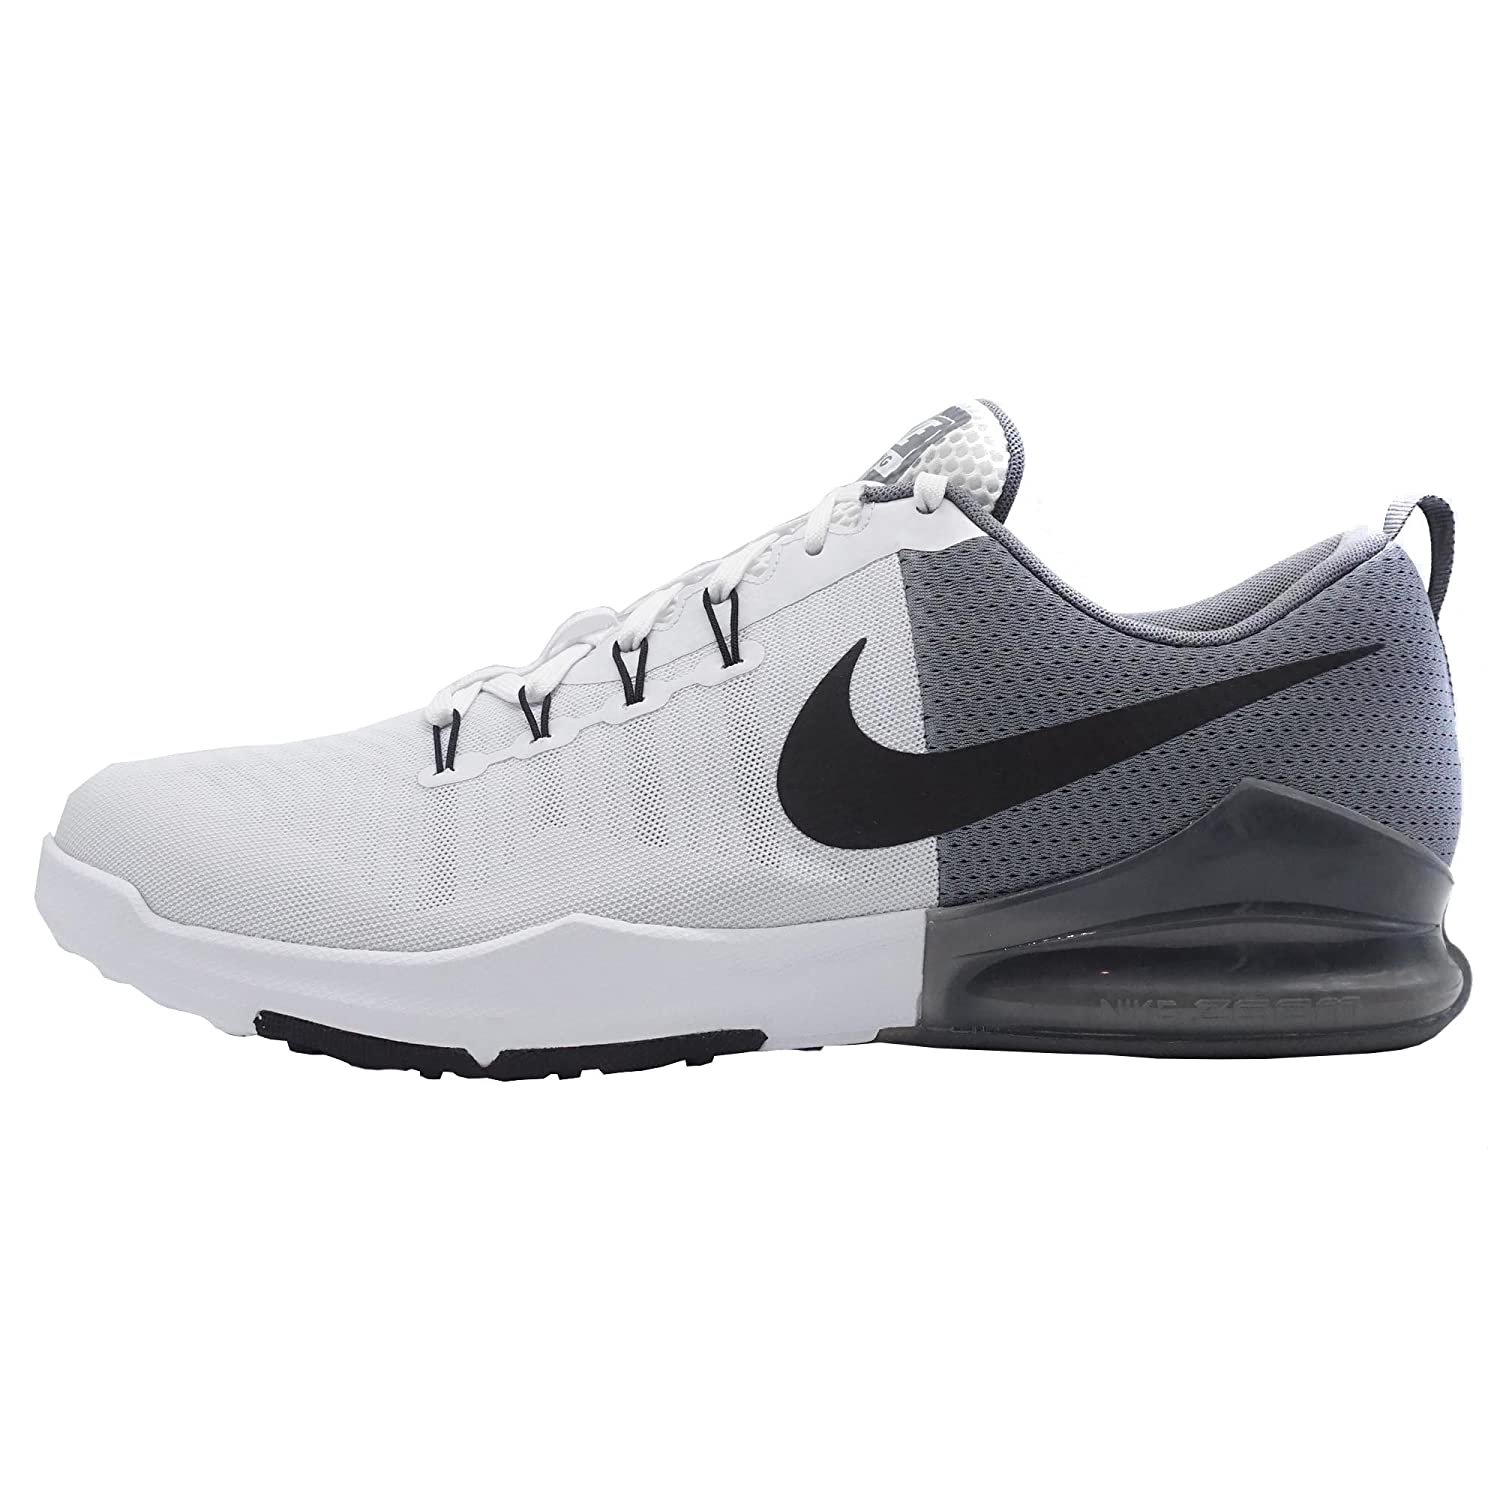 9f0a8ccdf27c ... italy amazon nike zoom train action white black cool grey pure platinum  mens cross training shoes